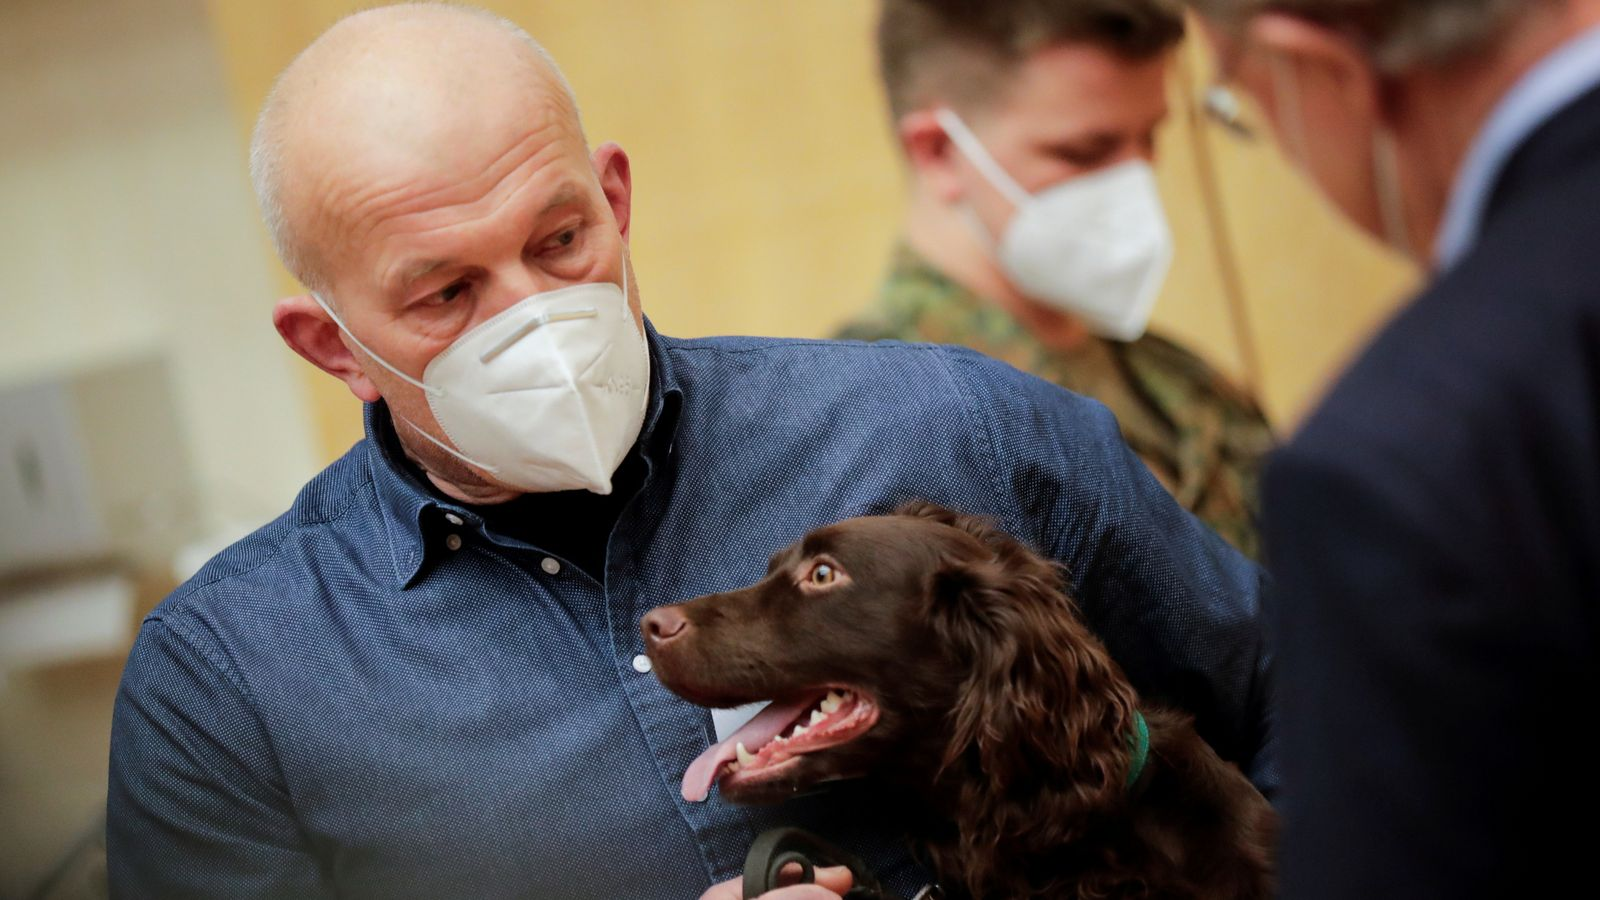 COVID-19: Scientists have trained sniffer dogs to detect coronavirus with 94% accuracy